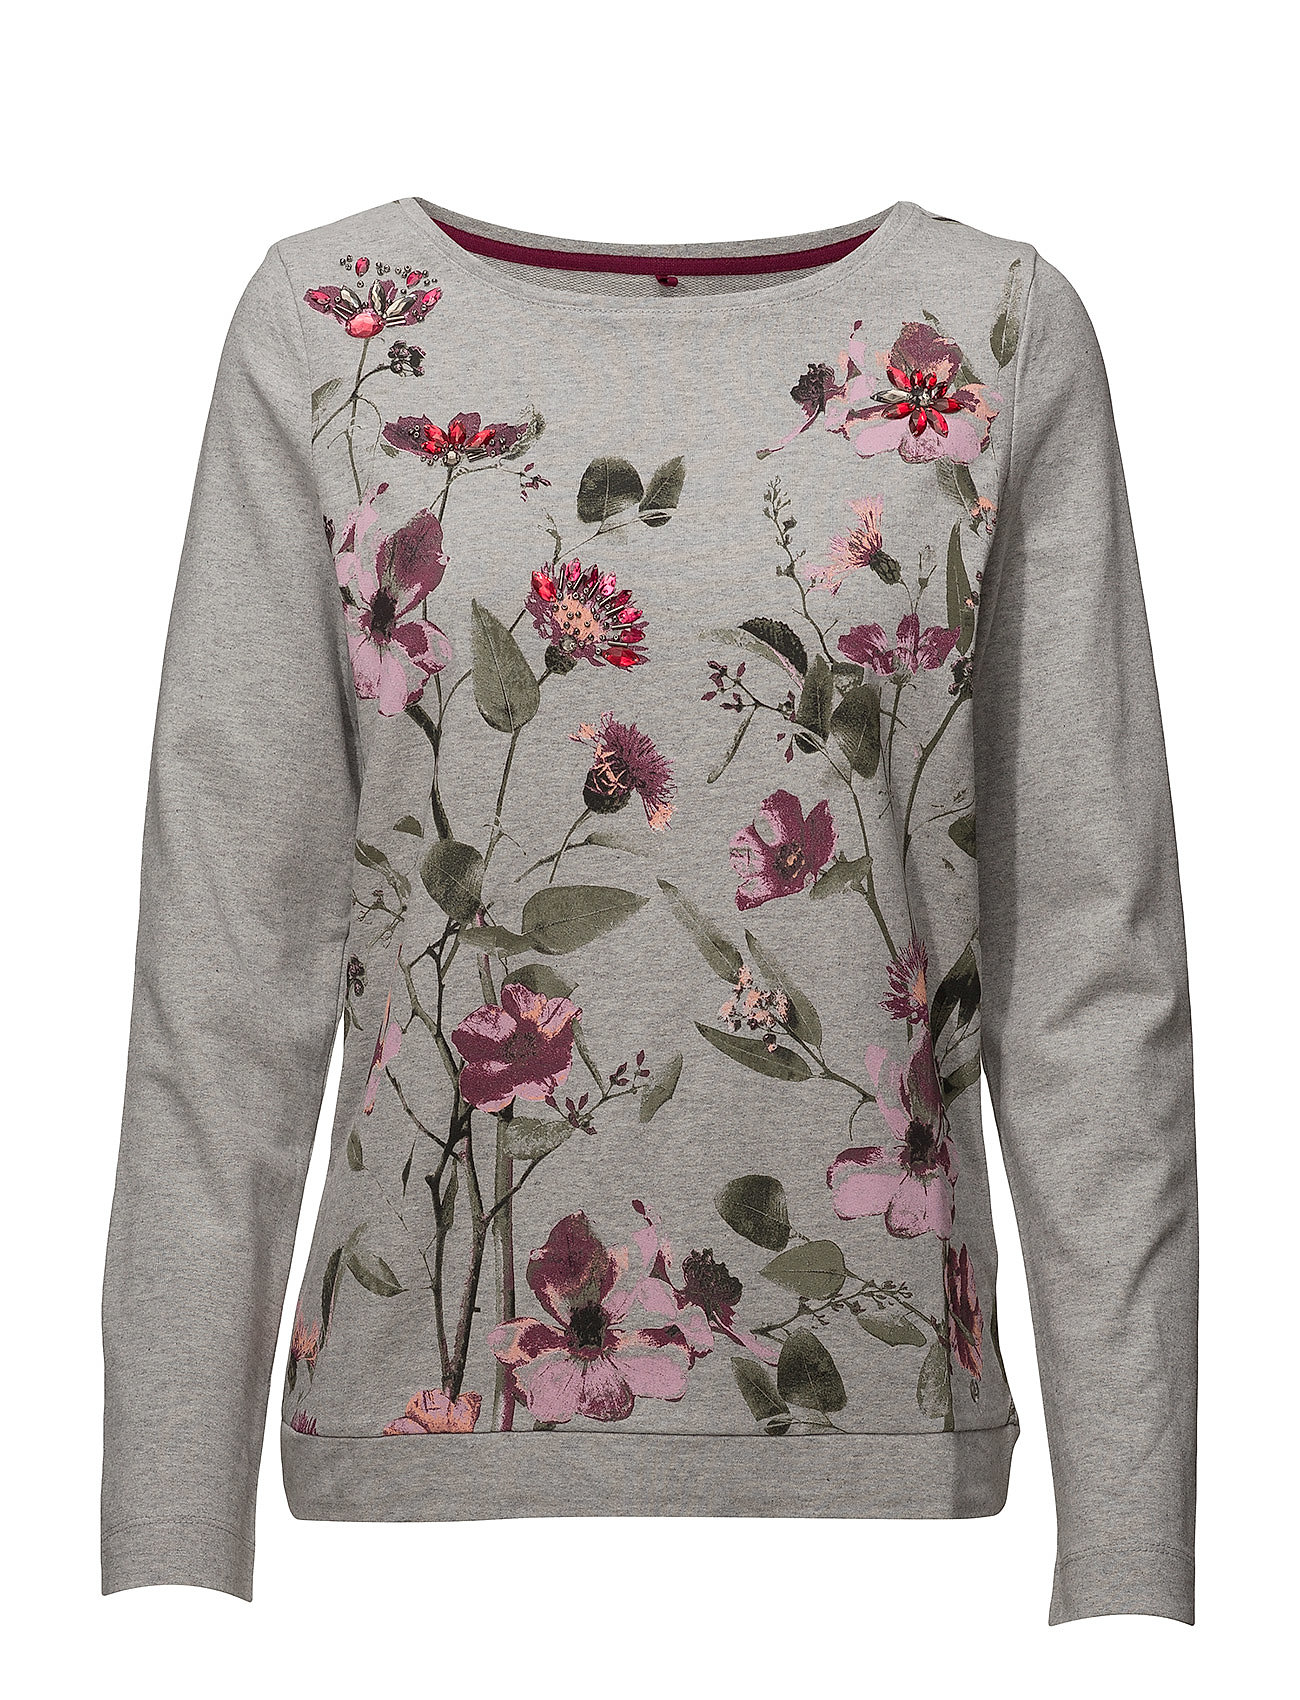 T-shirt Long-sleeve (Micro Chip Melange) (£42) - Gerry Weber Edition ... bff4113c7e8e